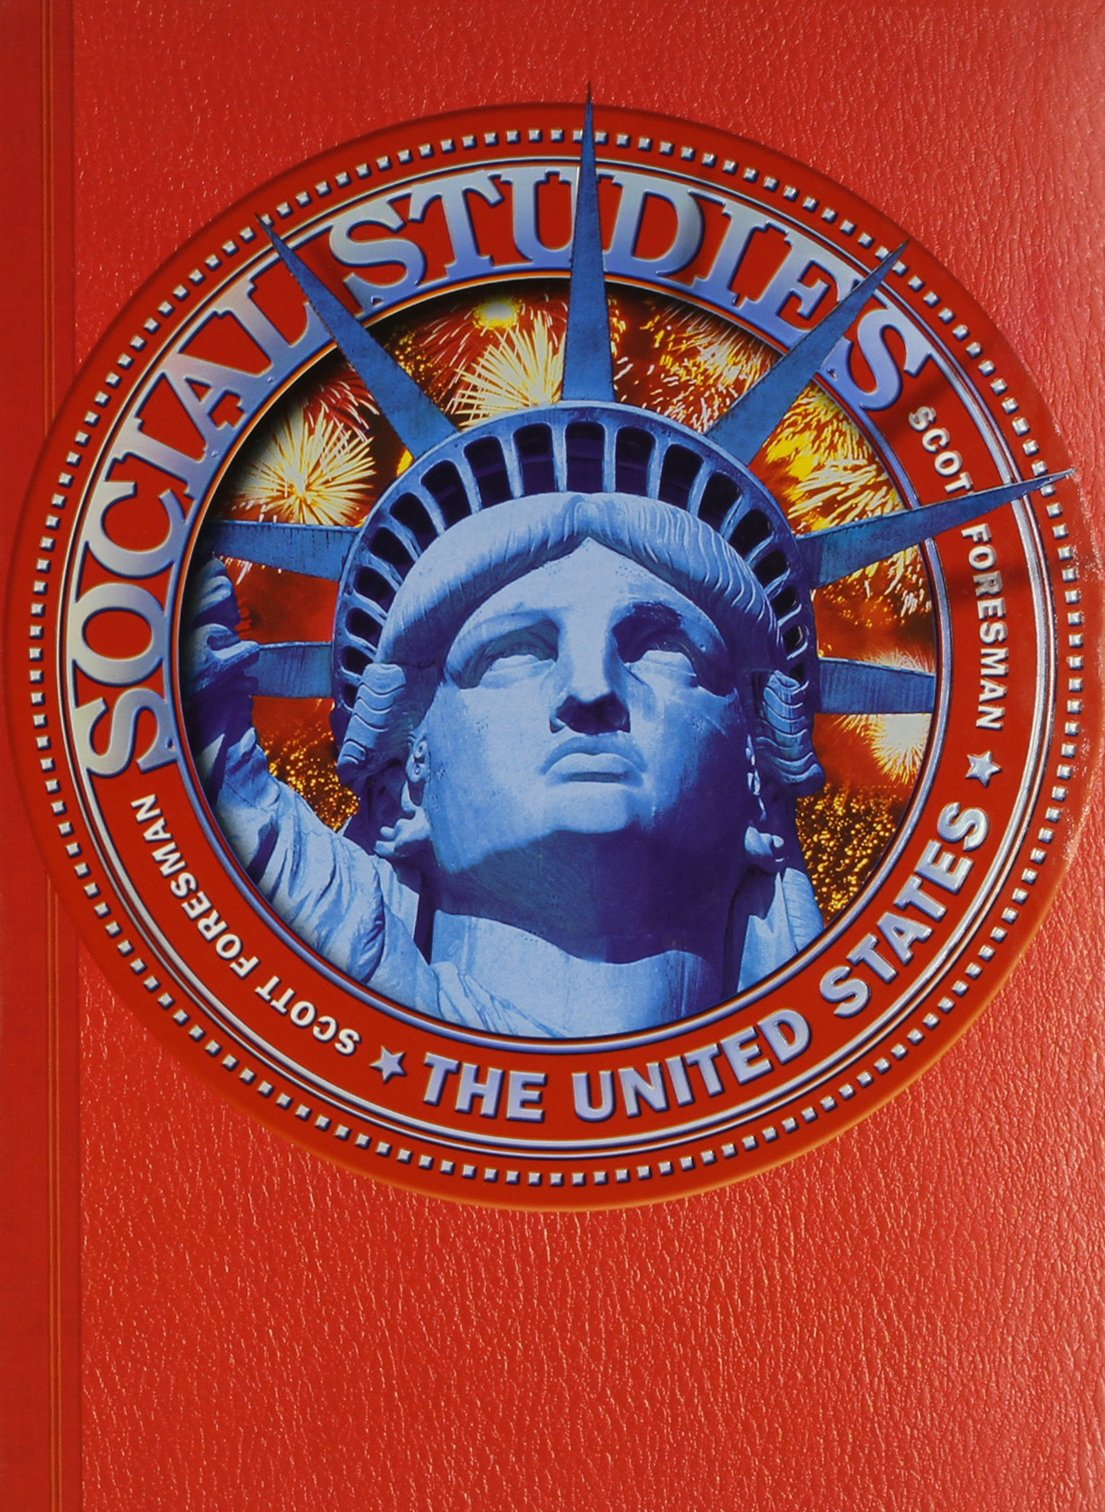 Workbooks scott foresman social studies workbook answers 5th grade : Amazon.com: SOCIAL STUDIES 2003 PUPIL EDITION GRADE 5 THE UNITED ...